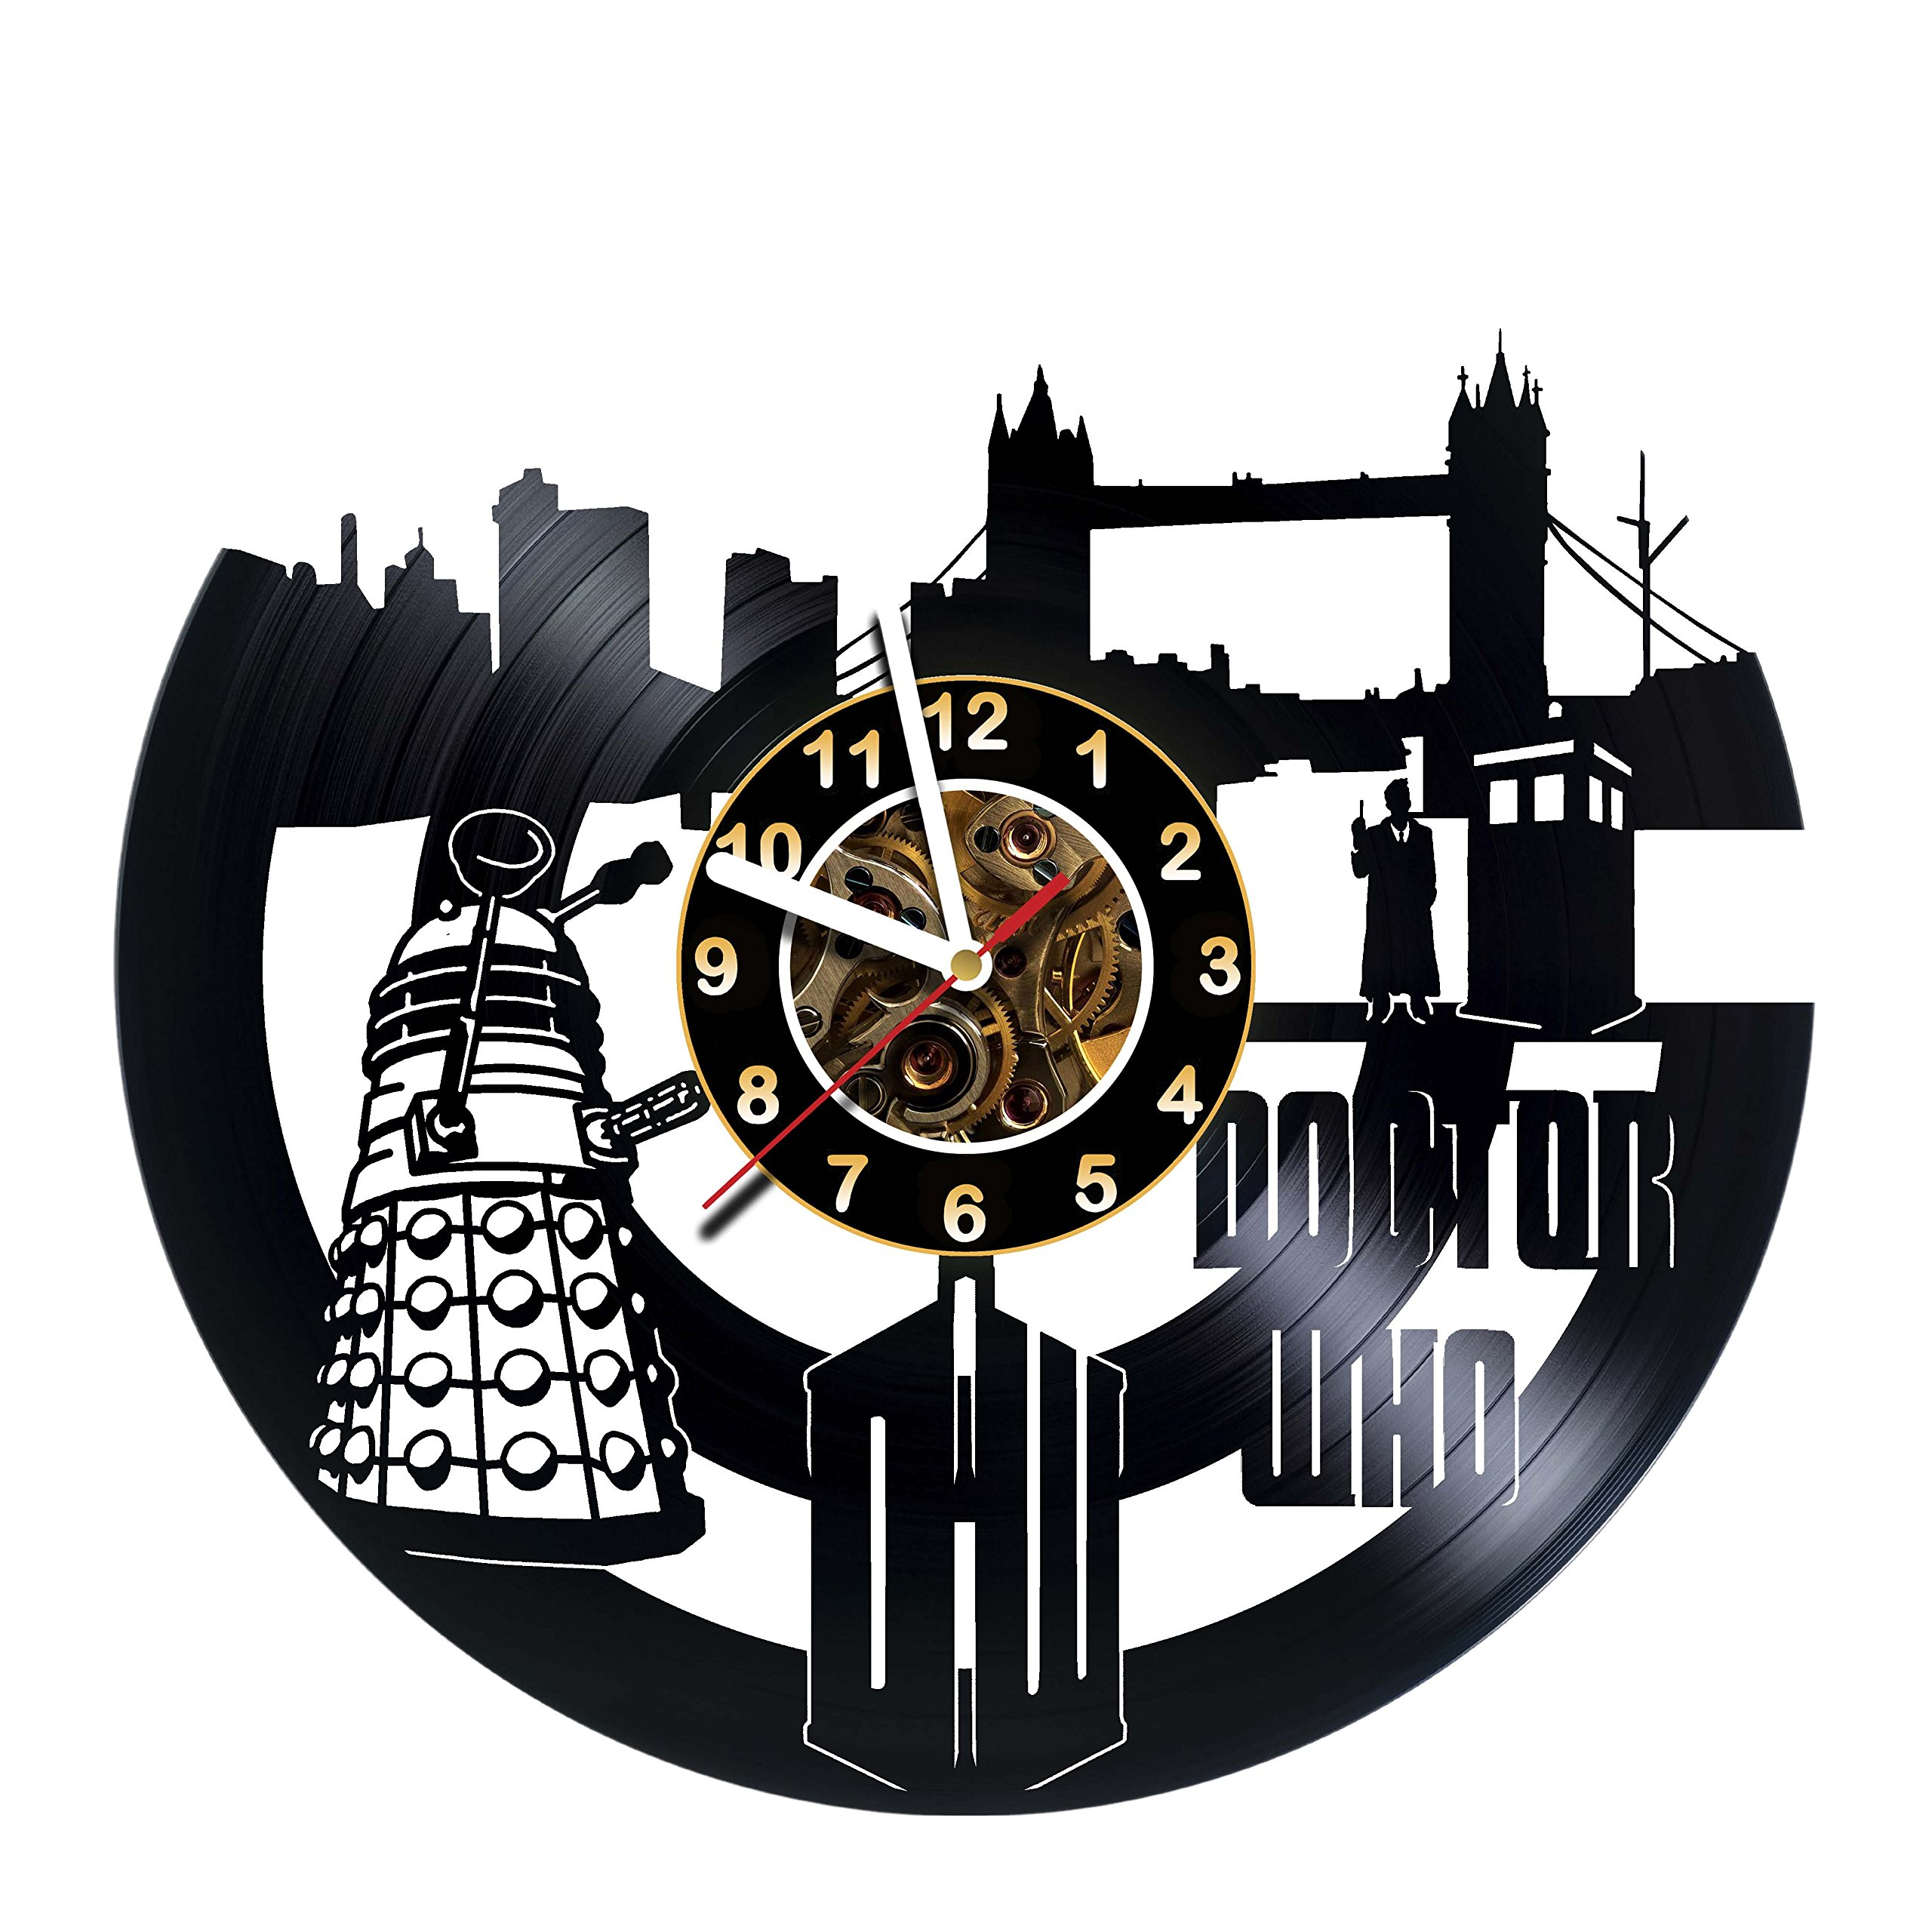 Tardis Doctor WHO - Vinyl Record Wall Clock - Poster - Christmas - Wall Art - Get unique living room wall decor - Gift ideas for adults, friends, men and women – Movie Unique Modern Wall ART Design